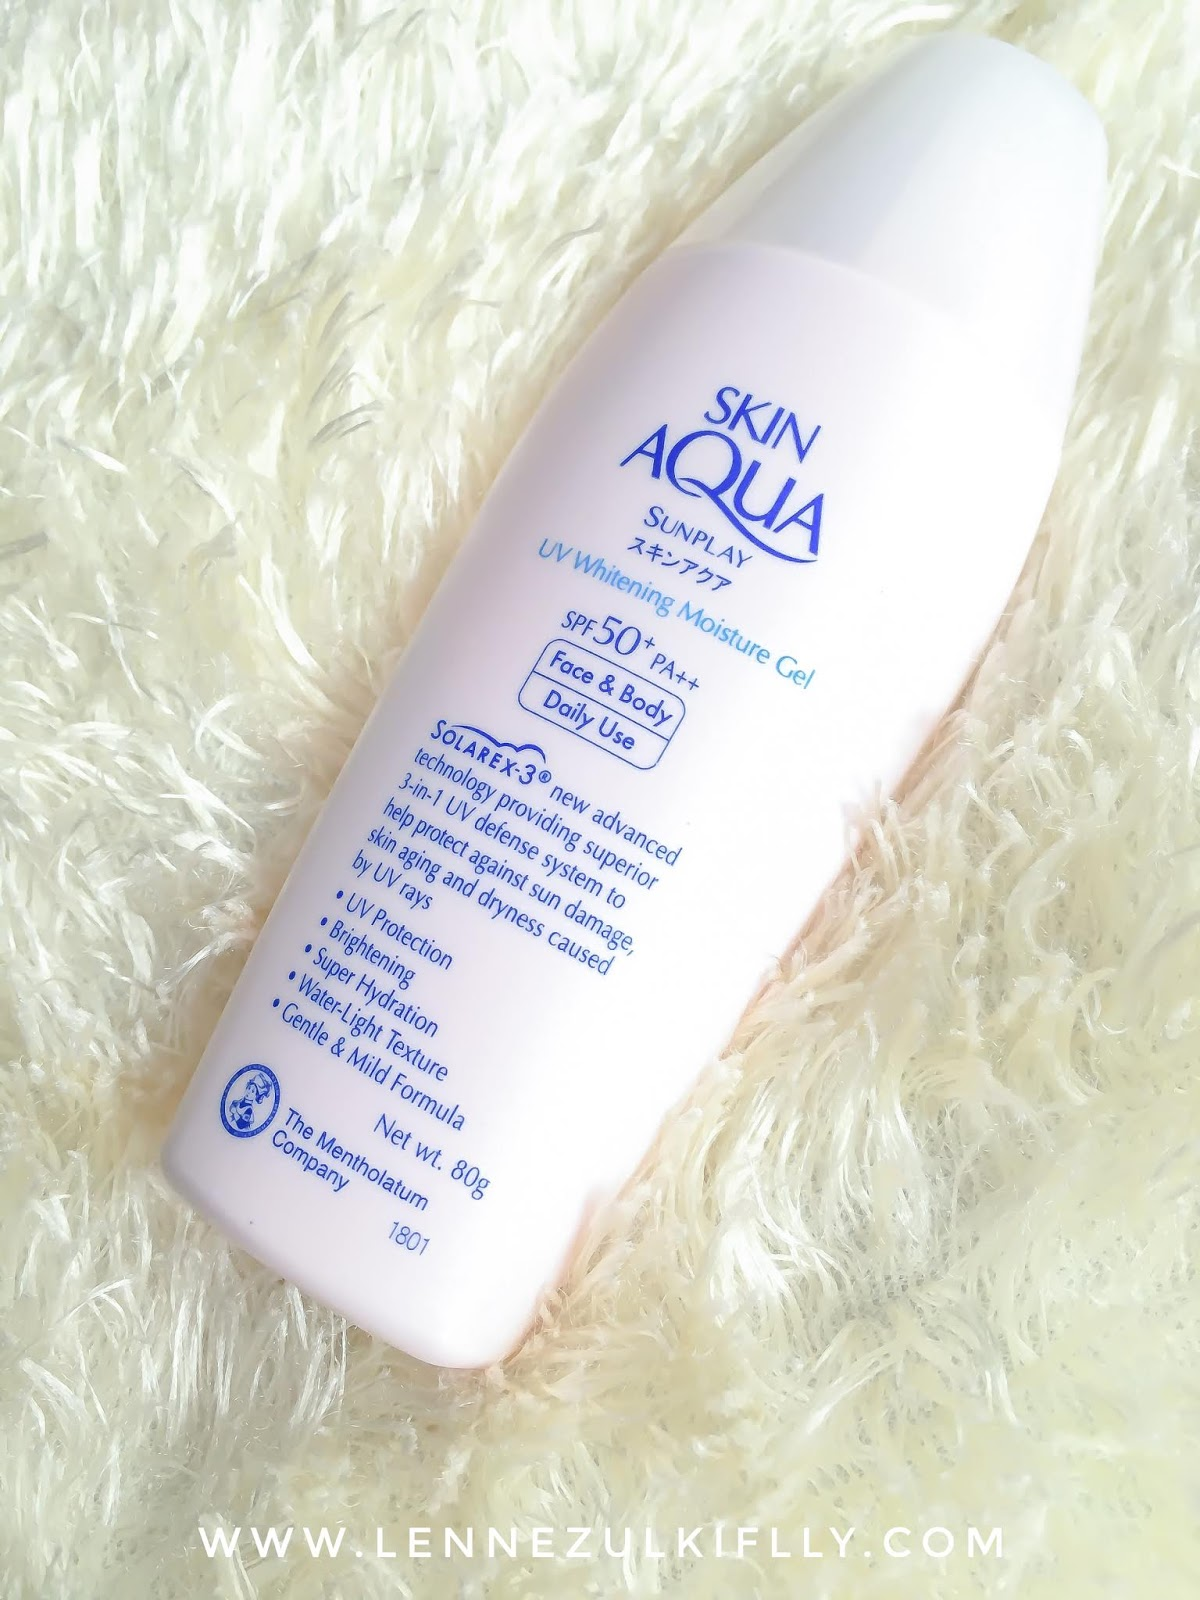 Sunplay Skin Aqua UV Brightening Moisture Gel SPF50 PA++